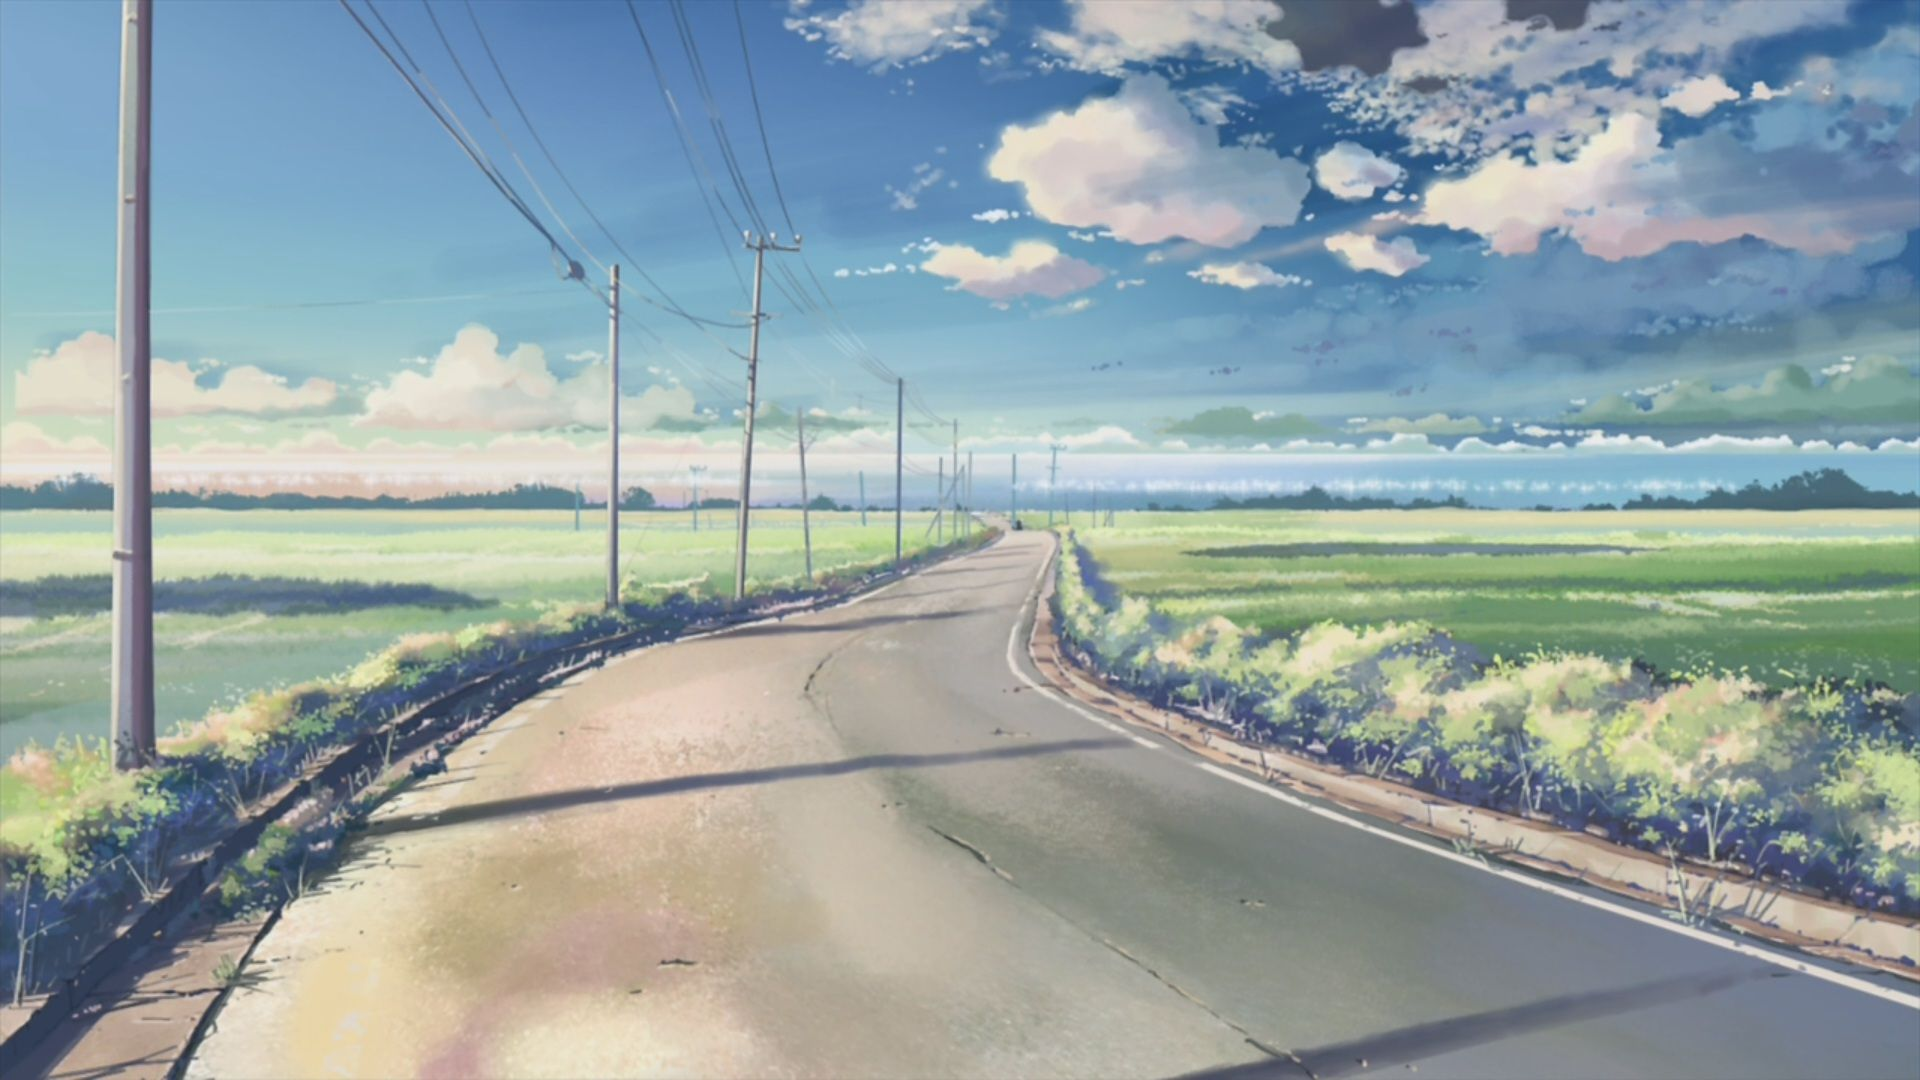 Anime Scenery Hd Wallpapers And Backgrounds Anime Scenery Anime Scenery Wallpaper Anime Background